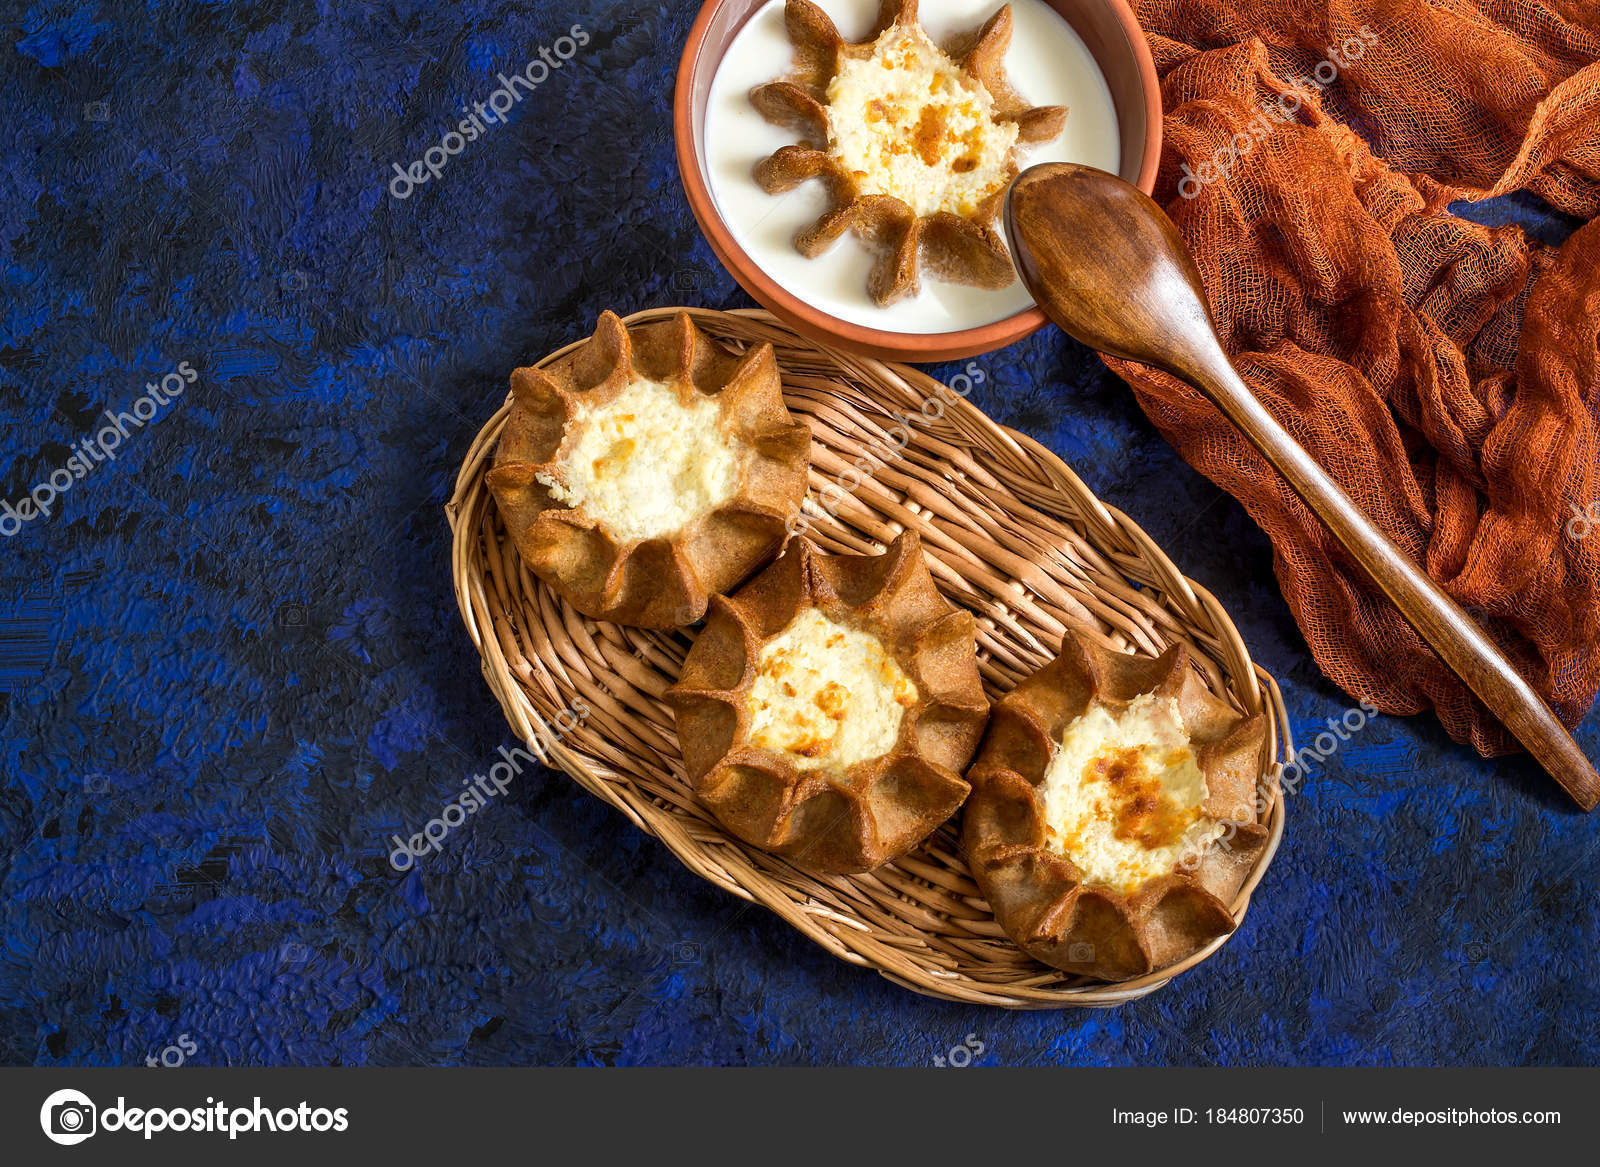 Karelian wickets: recipe with photos. The recipe for a delicious filling 64